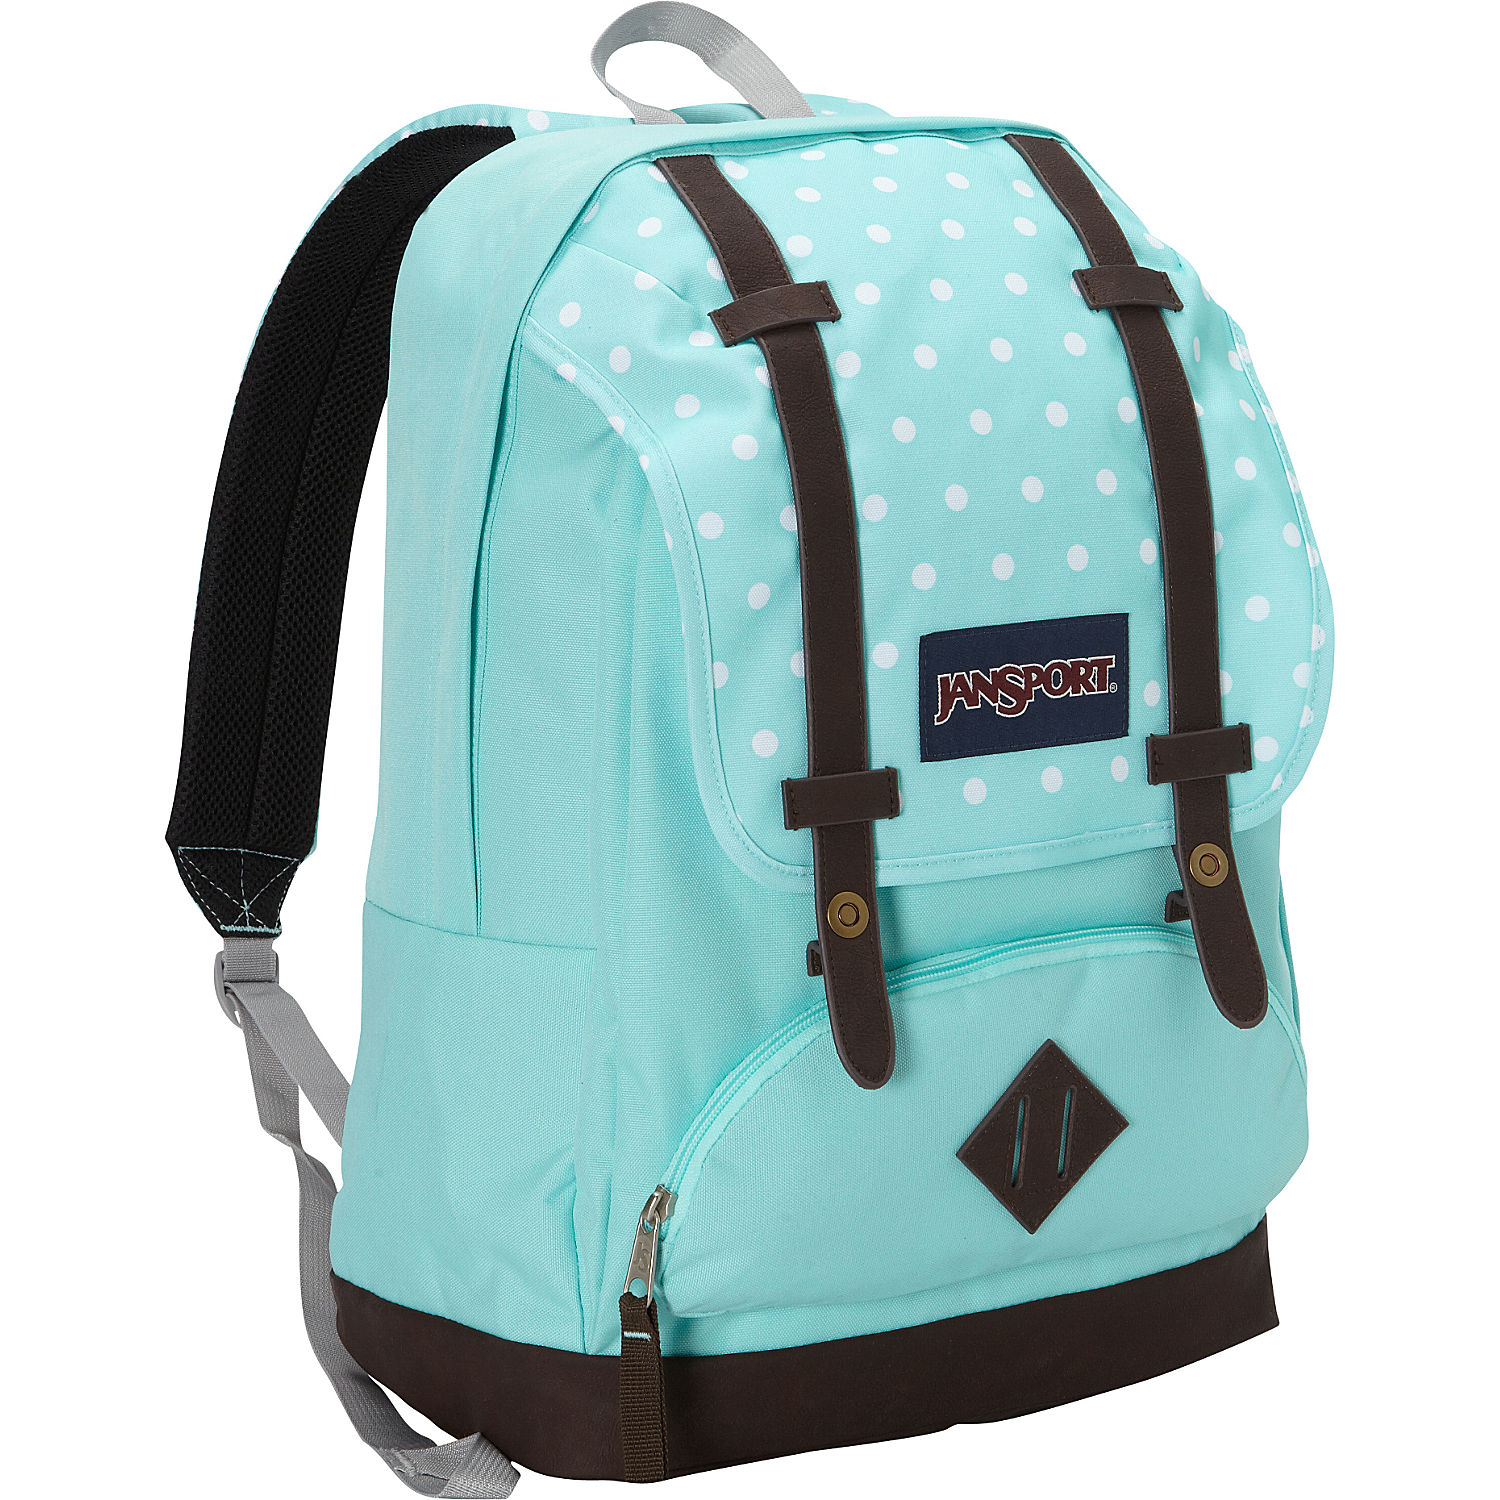 Where Can I Buy Jansport Backpacks | Crazy Backpacks